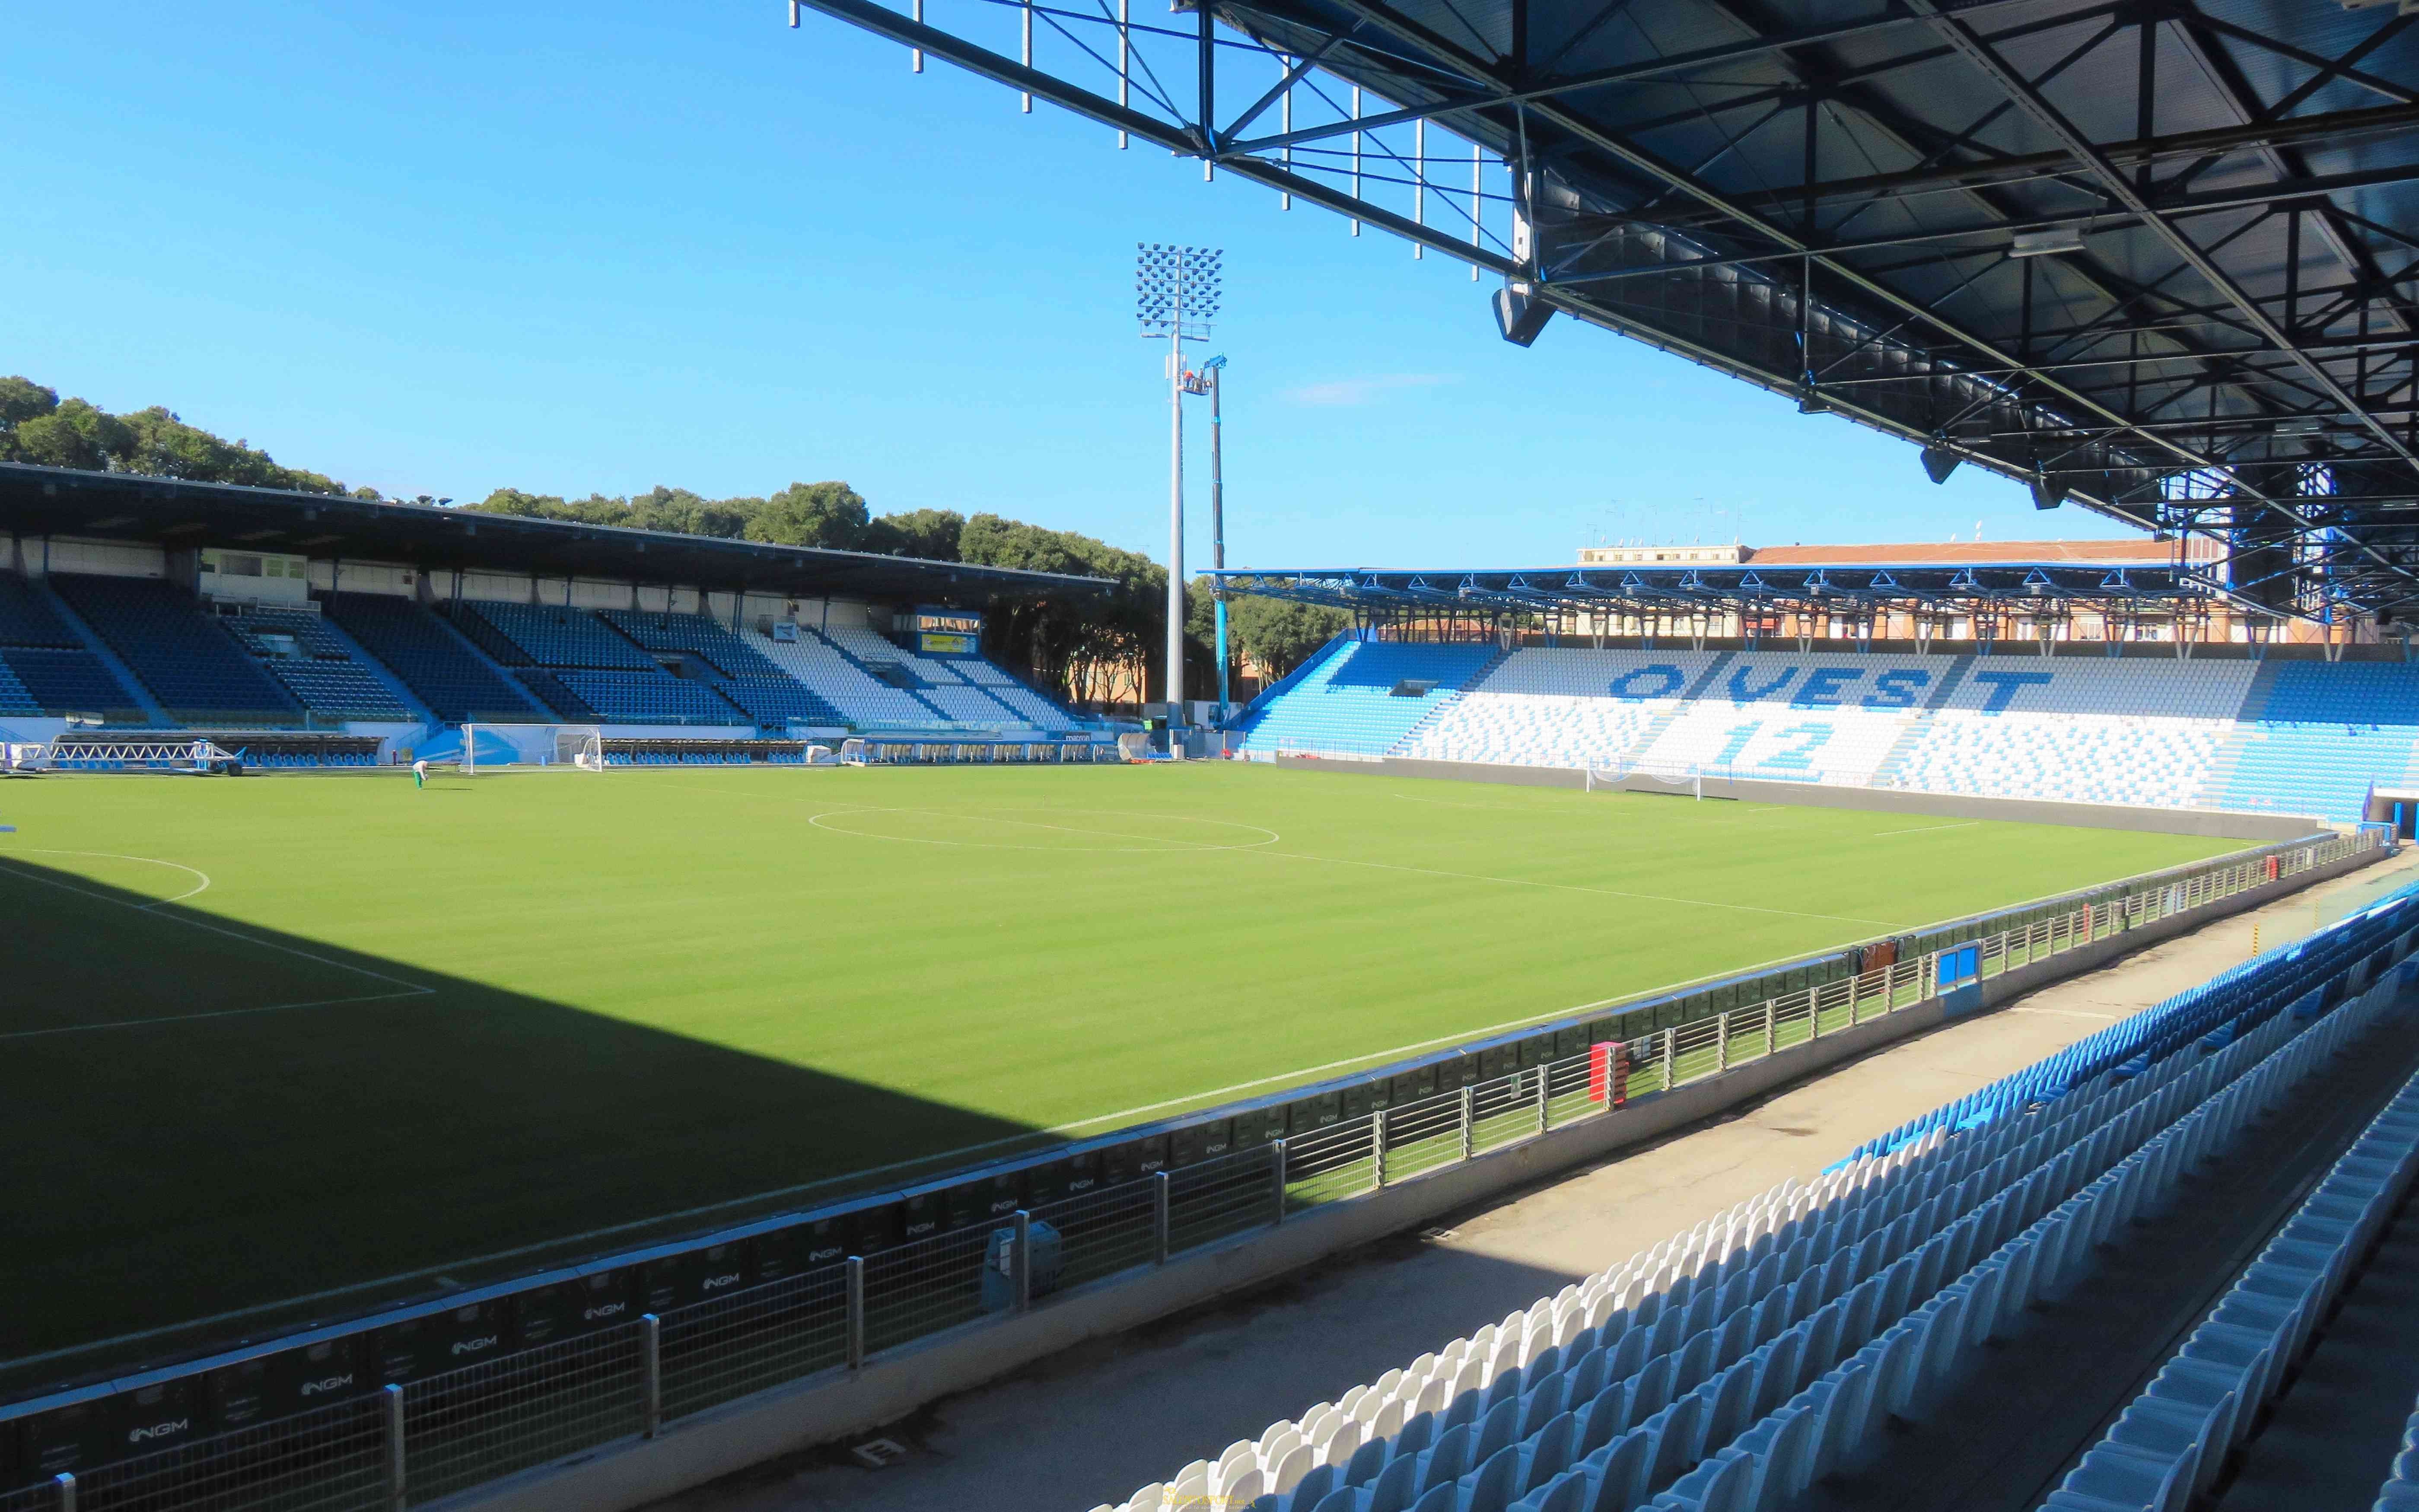 stadio-paolo-mazza-spal-ph-lungoleno-wikipedia